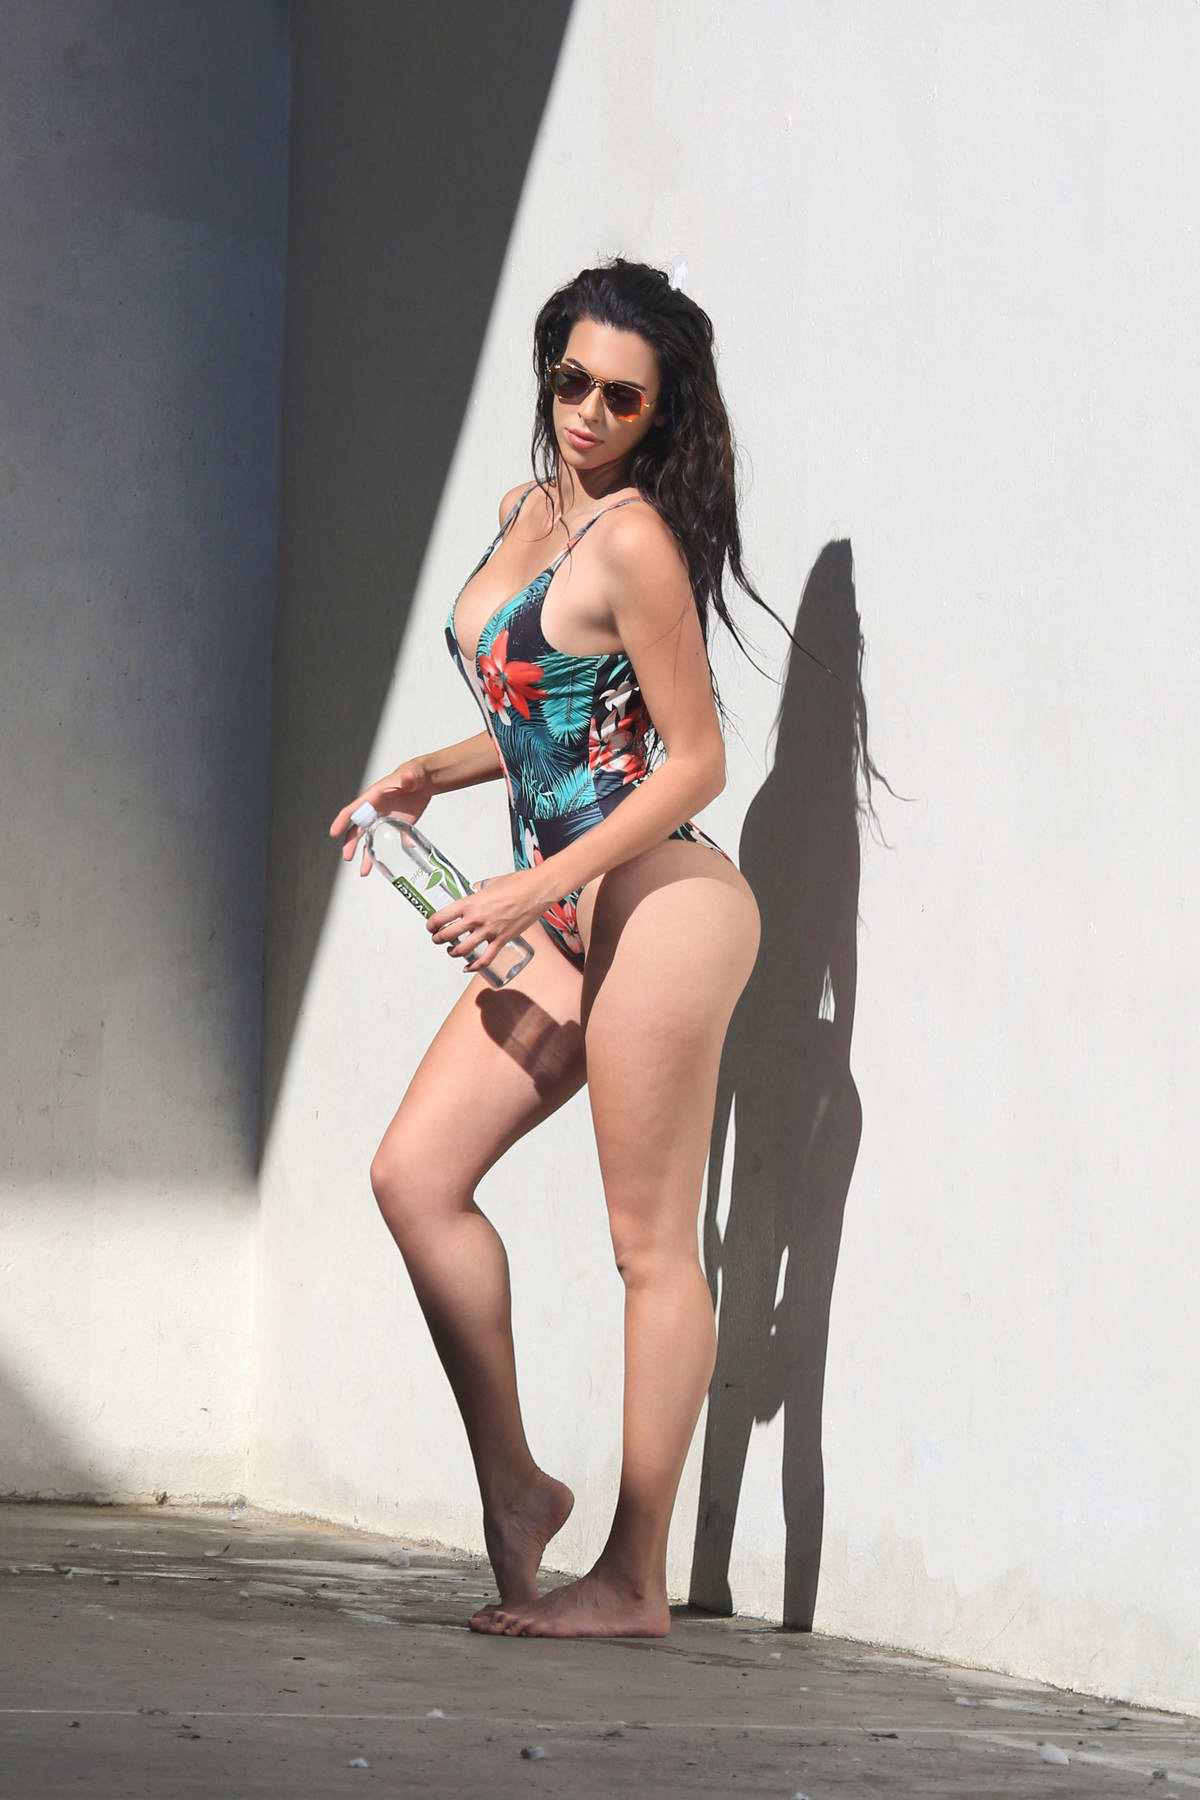 Tania Marie in Versace swimsuit as she shoots for 138 water in Venice beach, Los Angeles